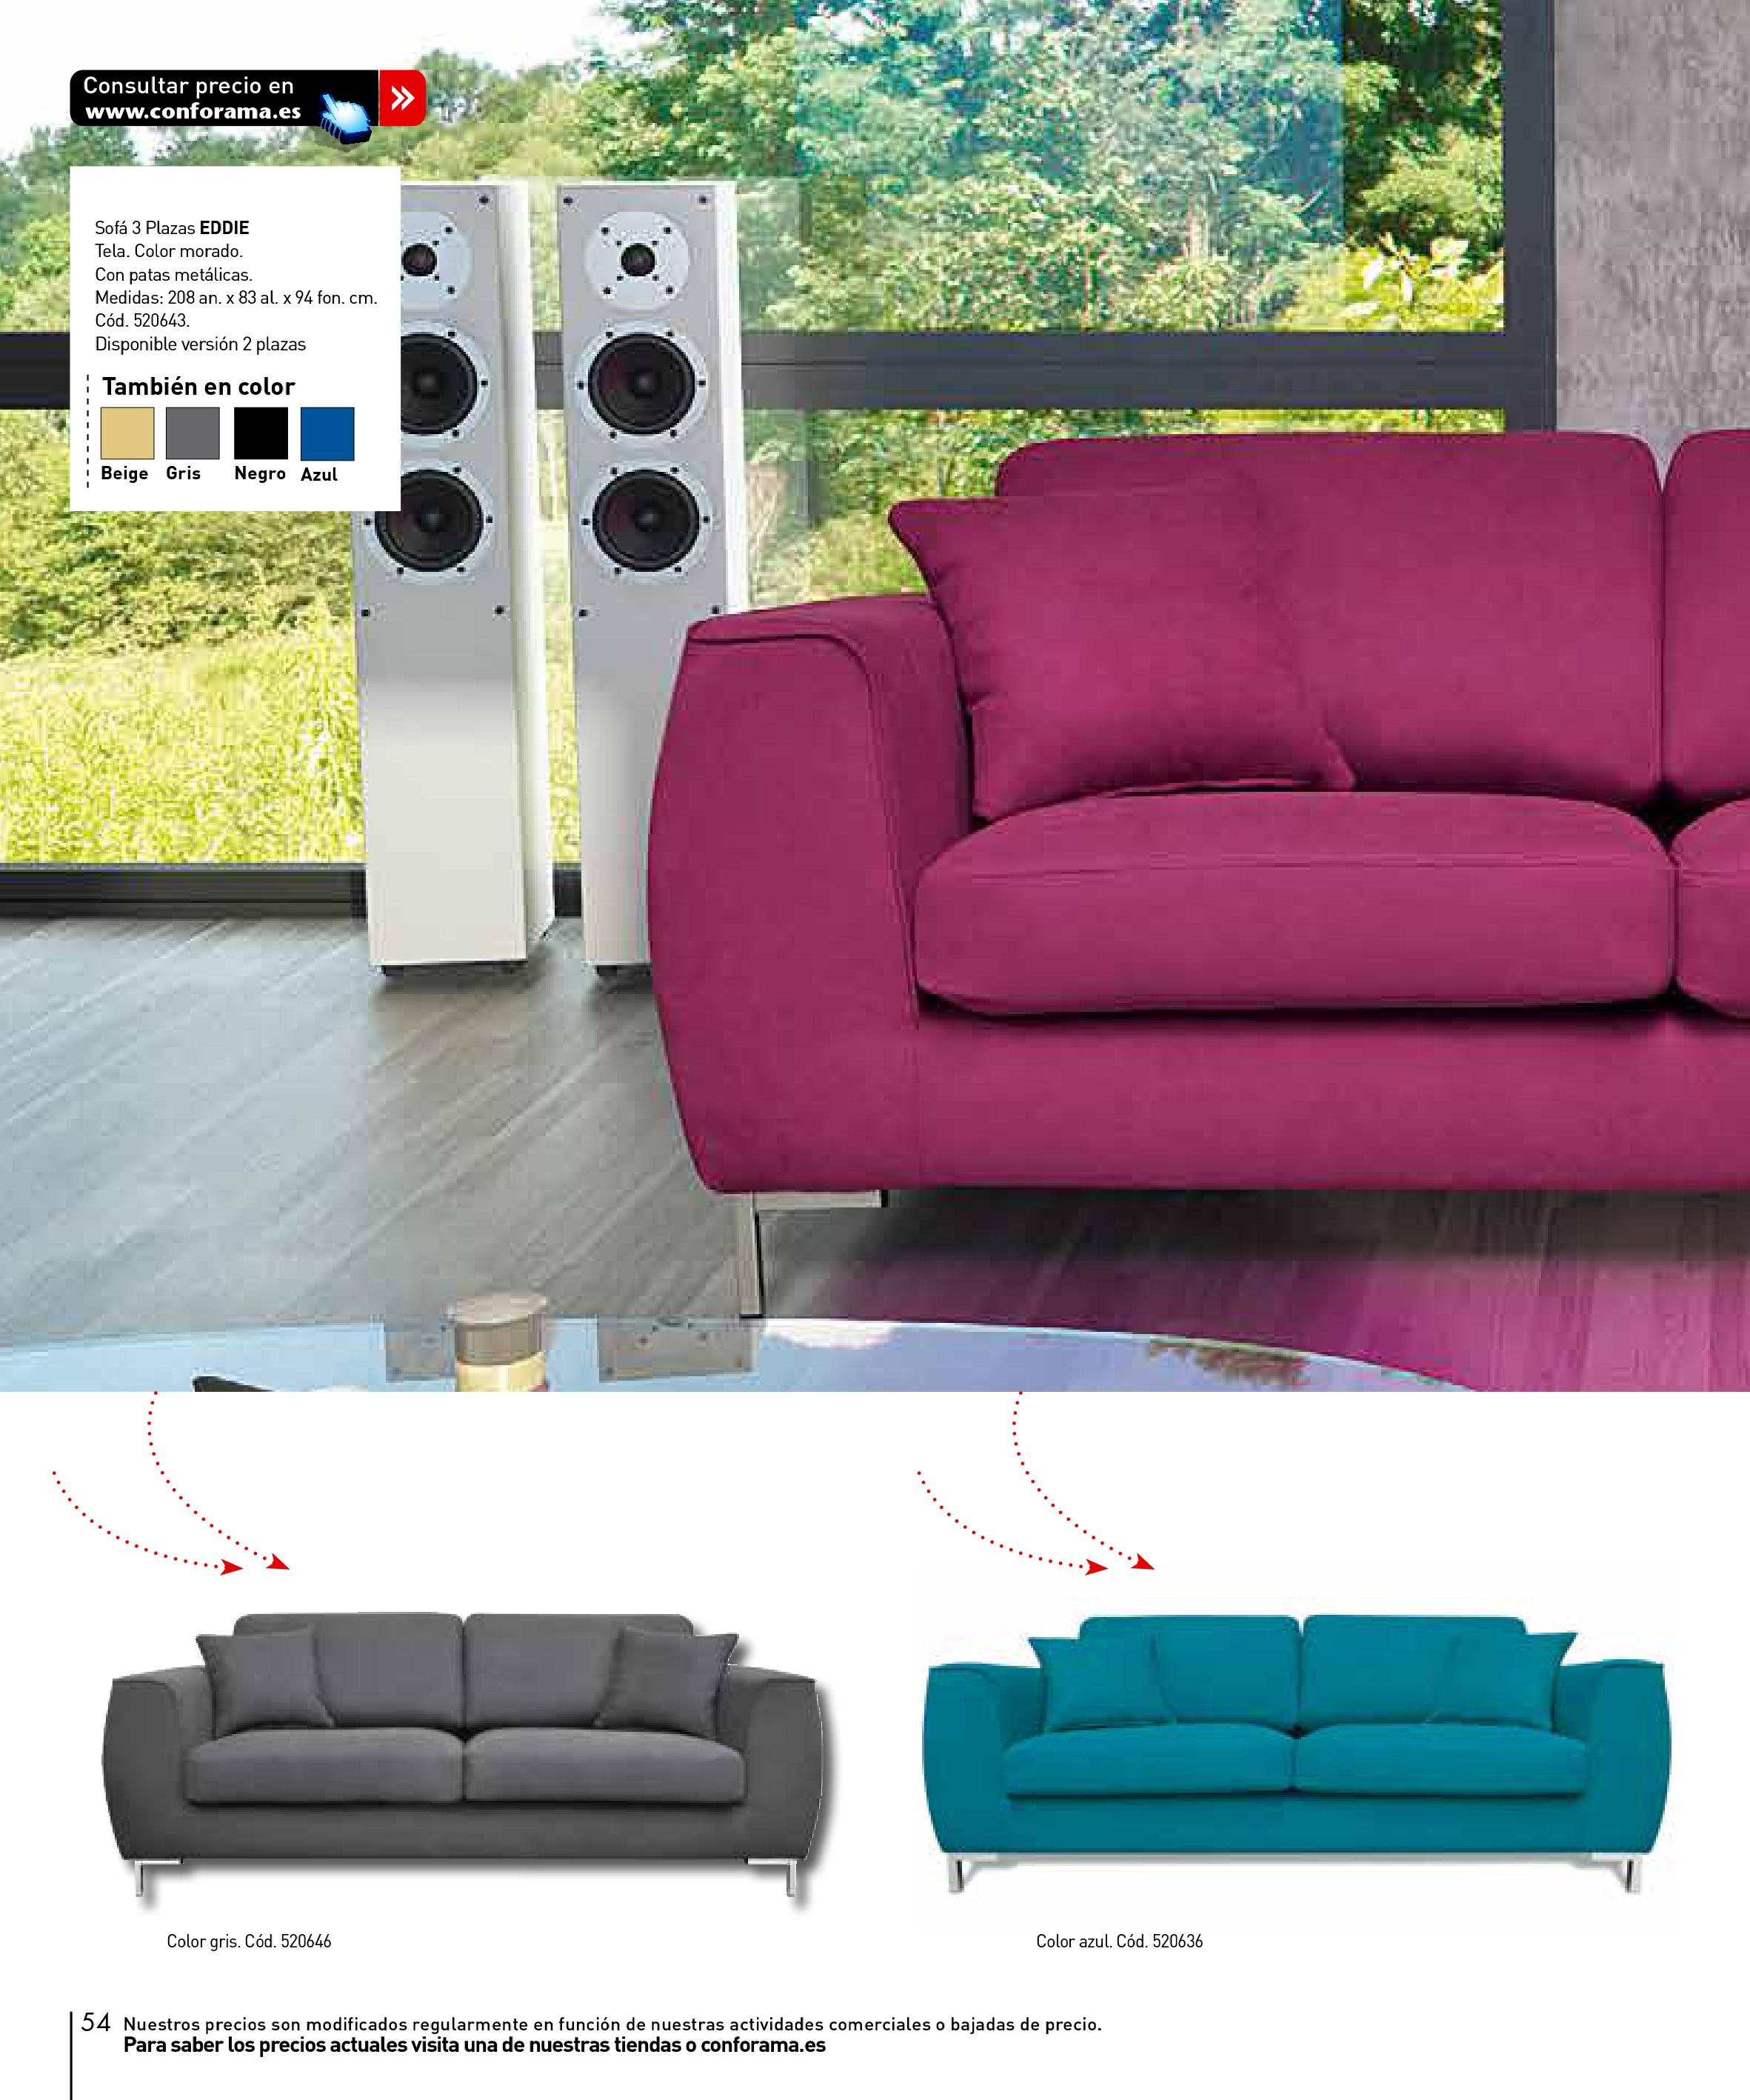 Sofas conforama 201554 for Sofas conforama catalogo